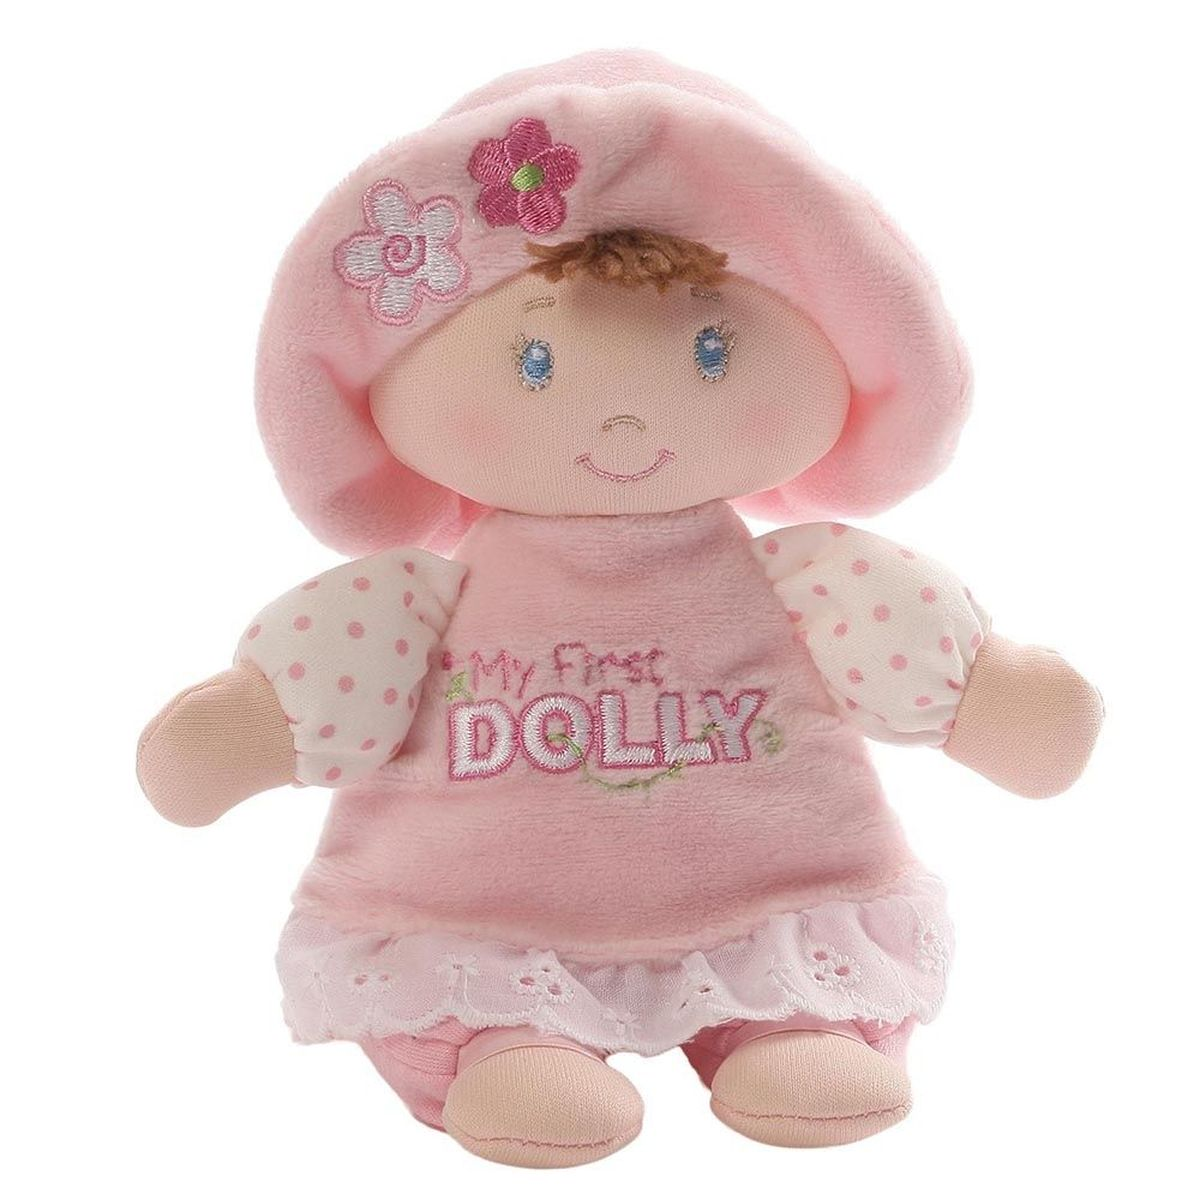 Gund Мягкая игрушка My First Dolly Small Brunette Rattle 18 см мягкая игрушка gund doll berry sweet dolly 10 blonde doll